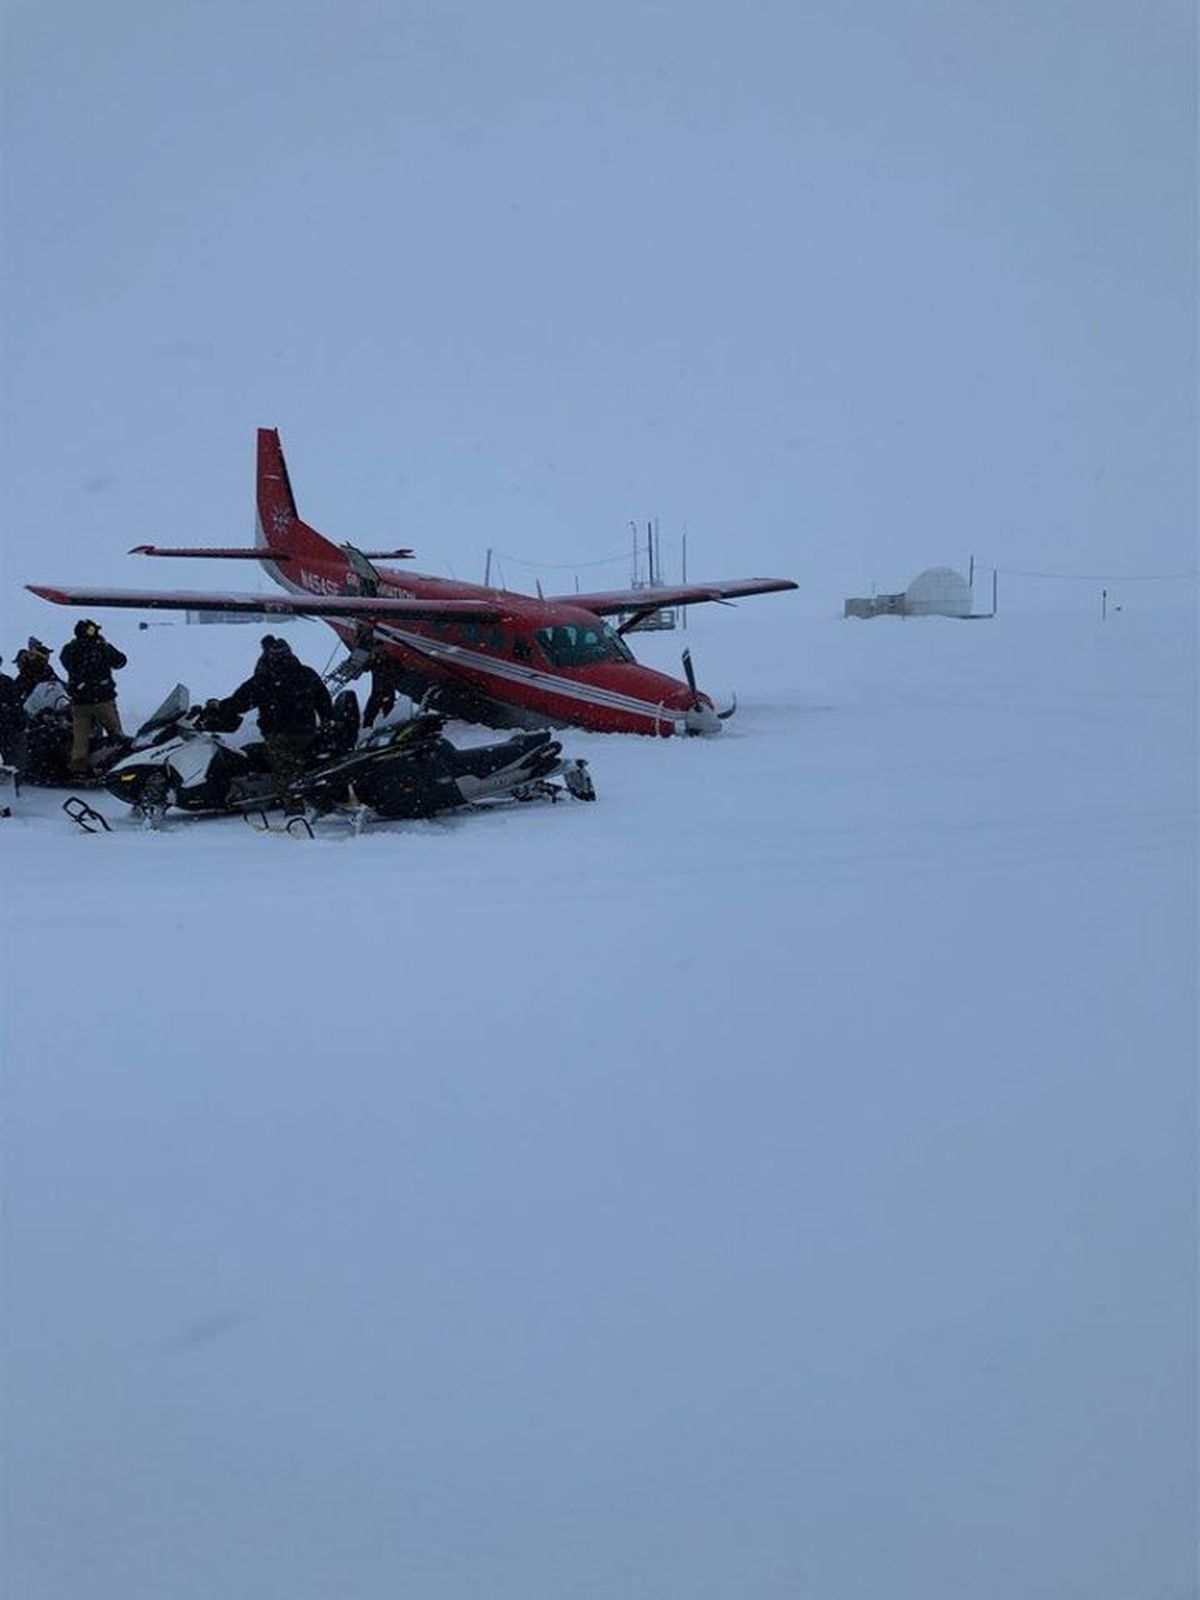 A Grant Aviation plane crashed during takeoff in Hooper Bay on Feb. 4, 2020. None of the eight people on the plane were injured. Photo by Caleb Funk